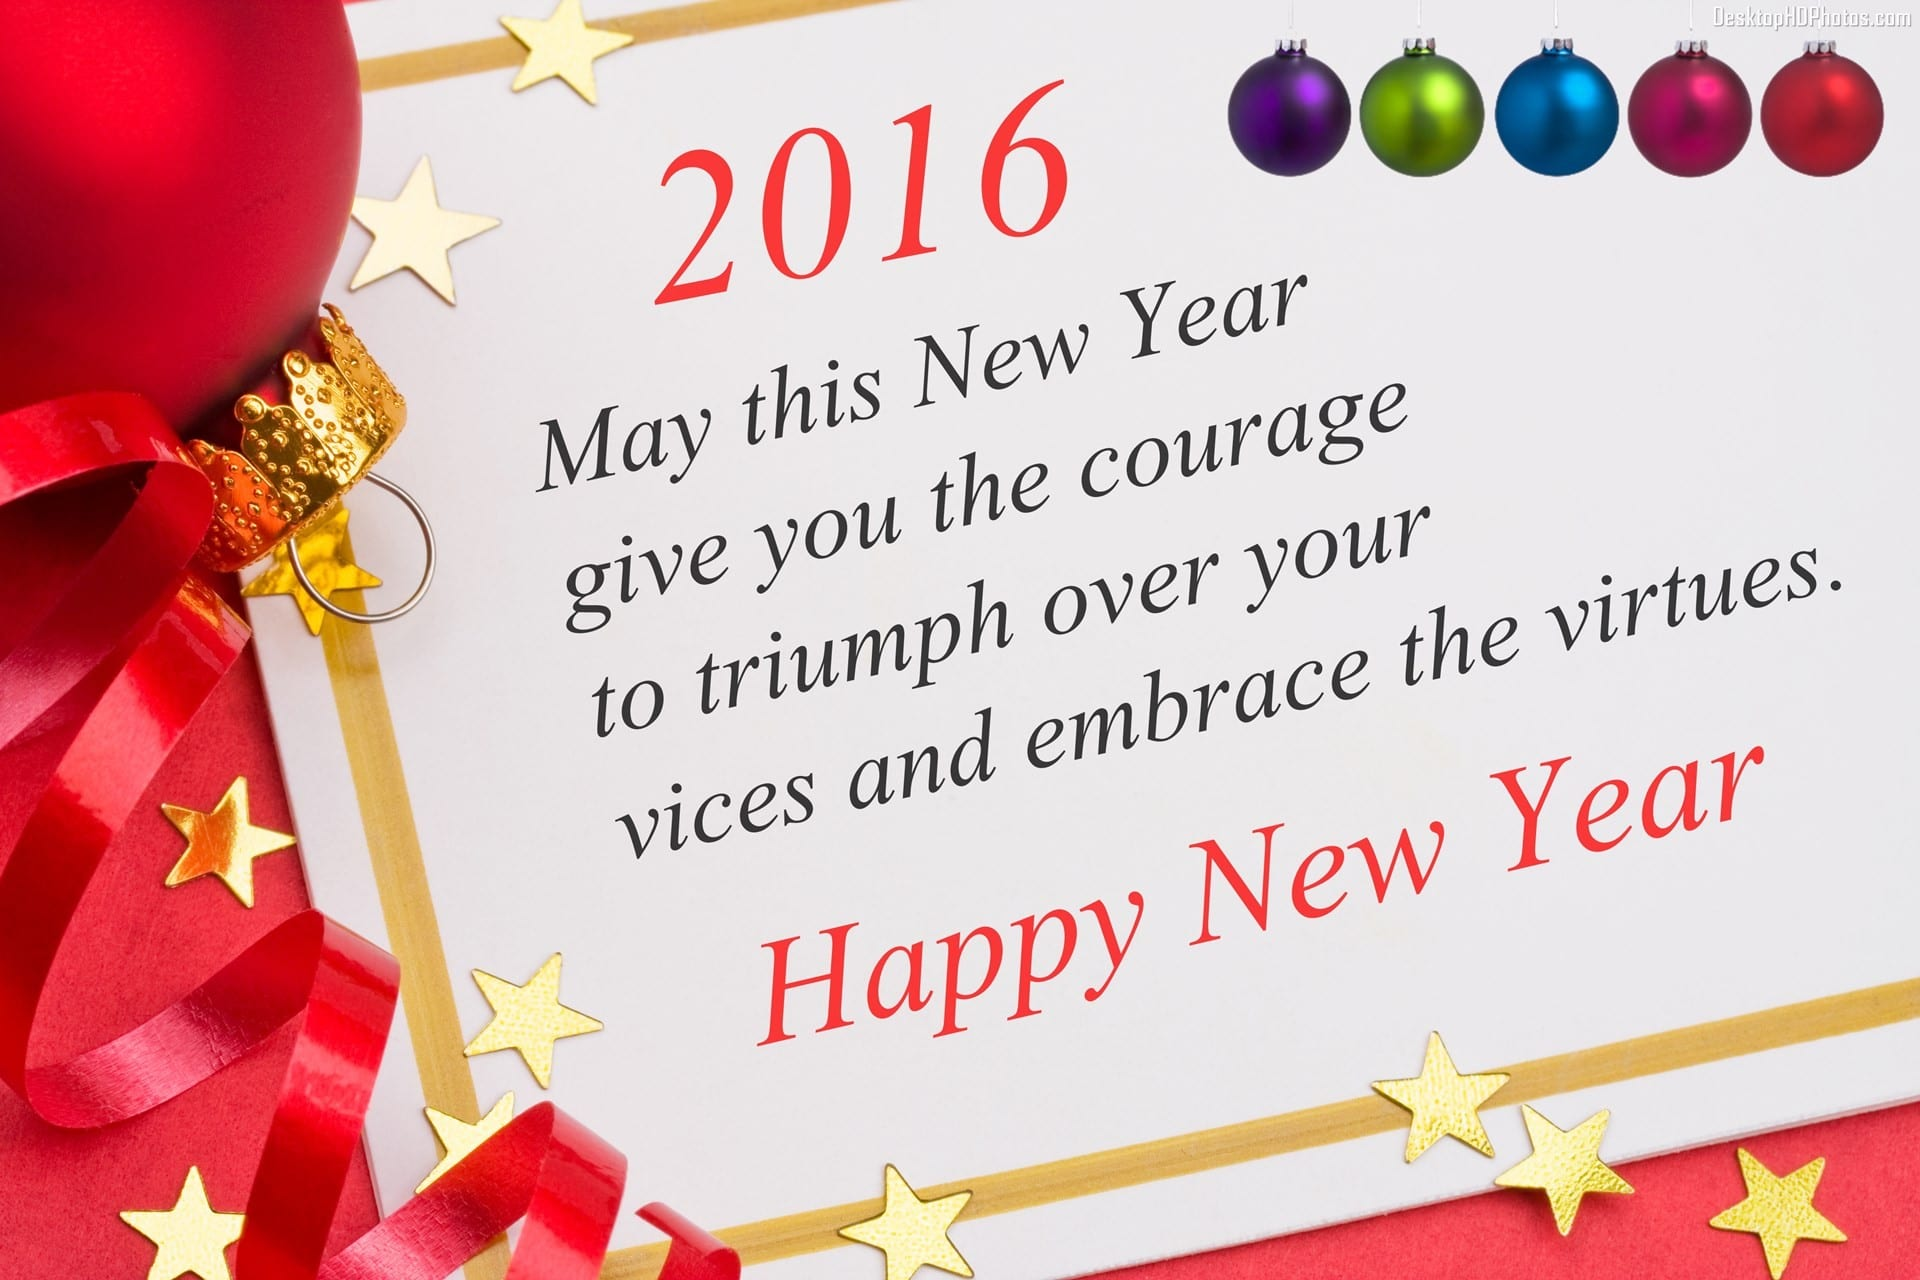 Happy New Year 2016 Quotes, Wishes, Message & SMS